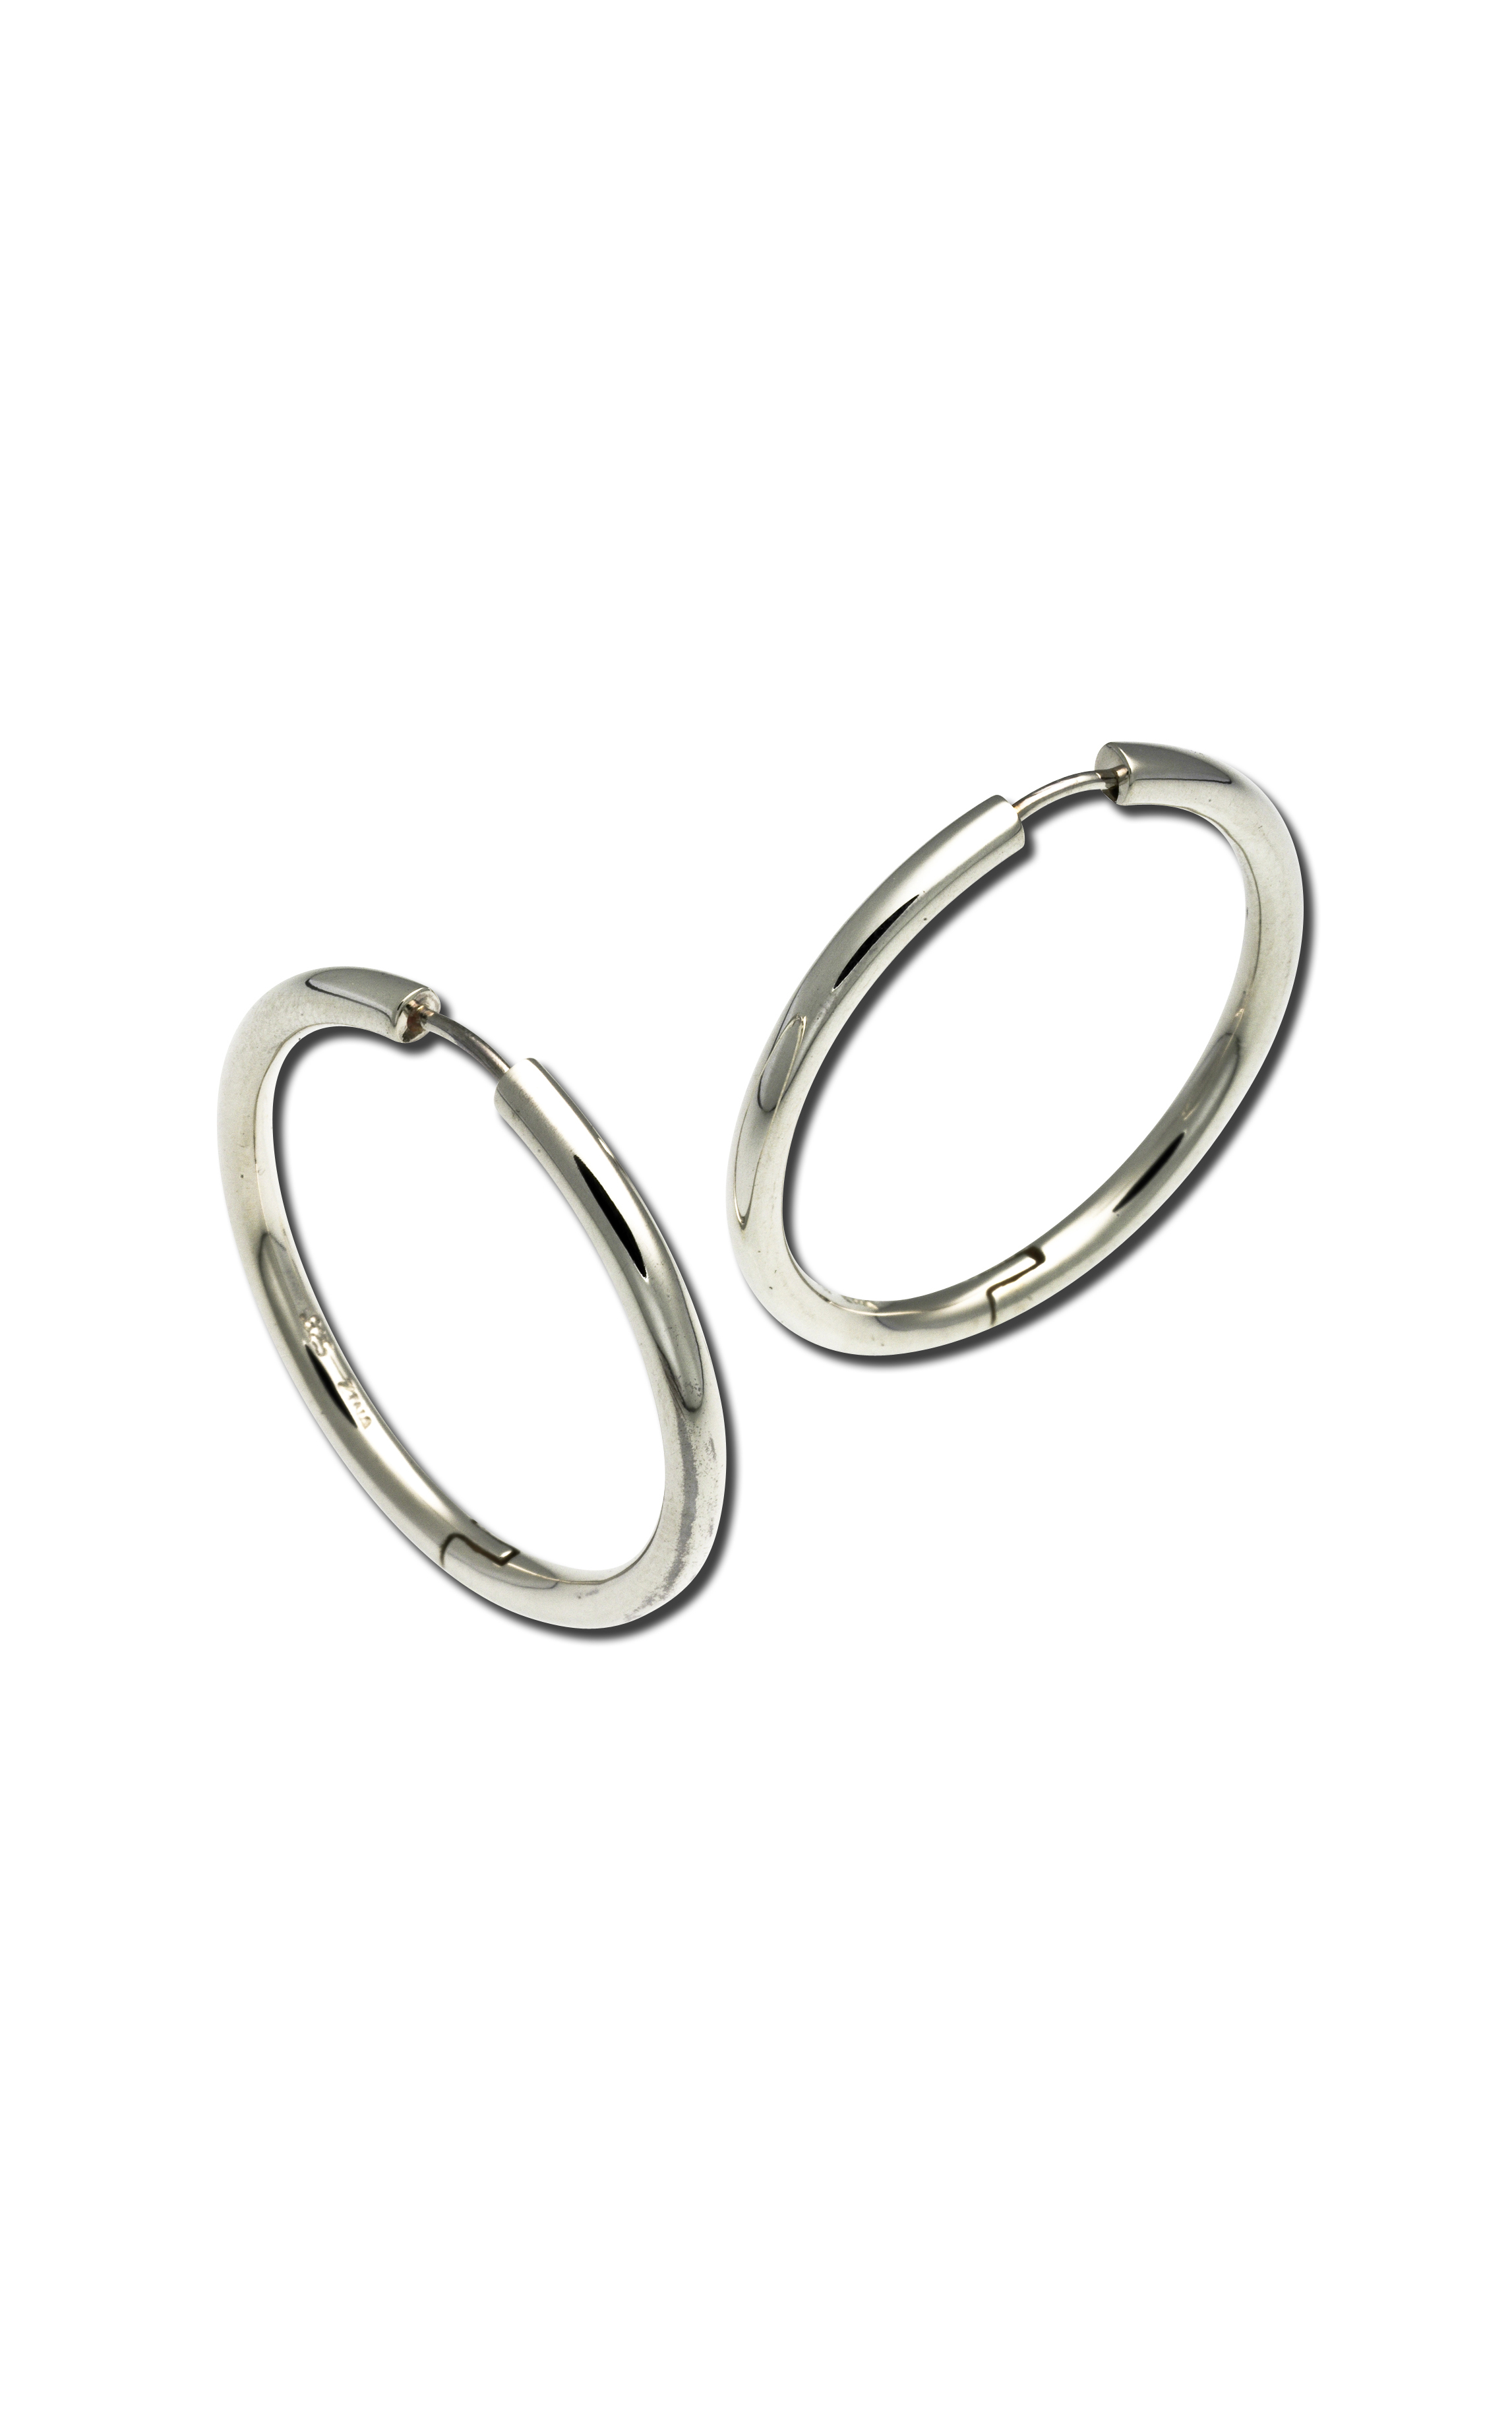 Zina Contemporary Earrings B3 product image